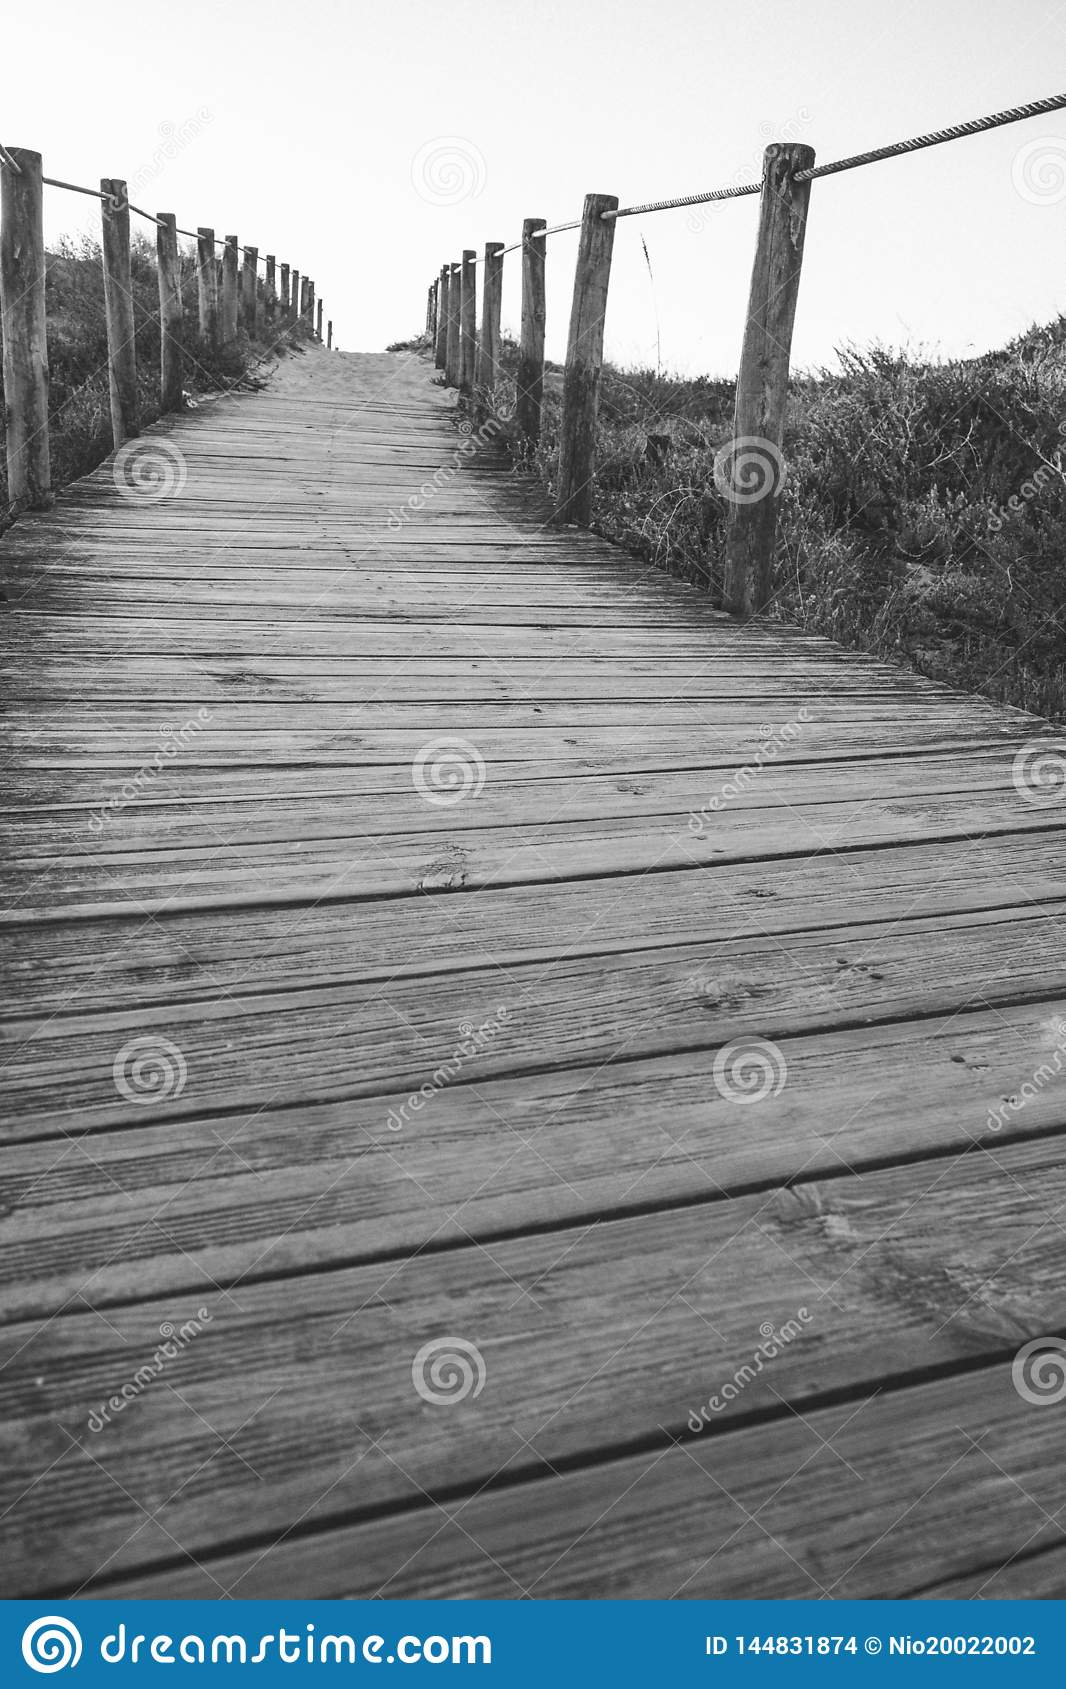 Wooden fence and walkway to beach black and white. Empty path monochrome. Walking concept.